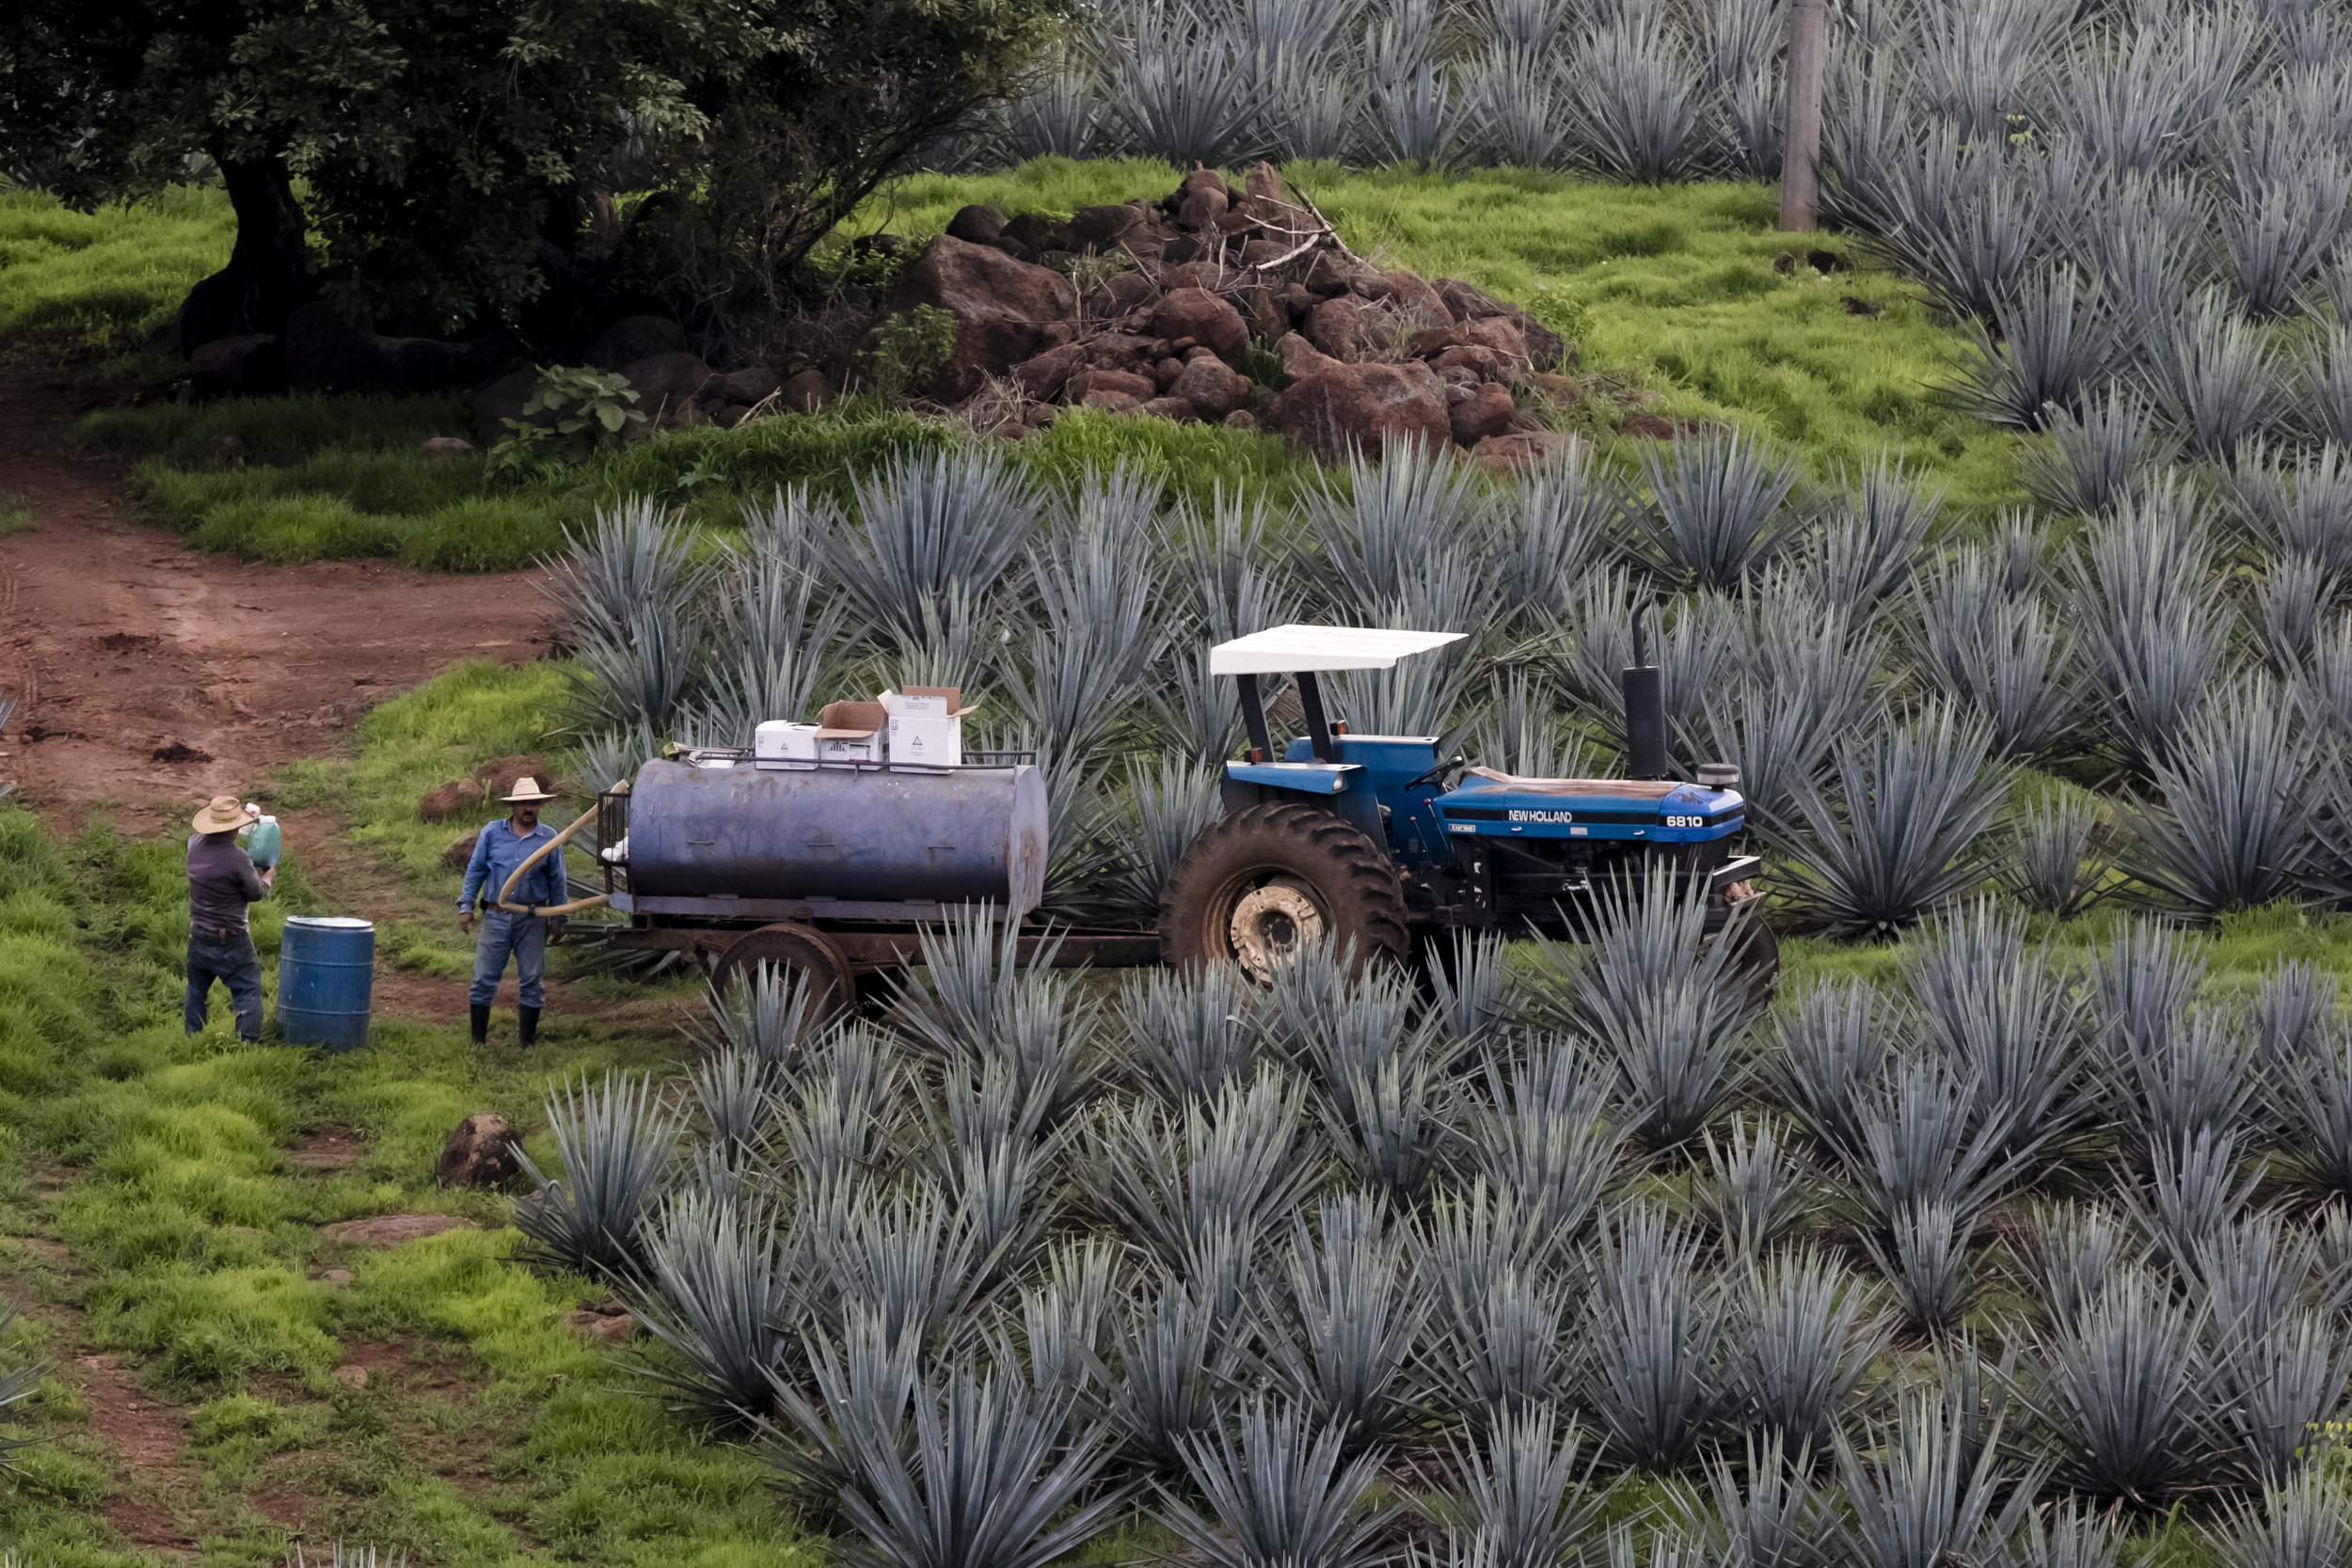 VincentIsore_Tequila009.JPG